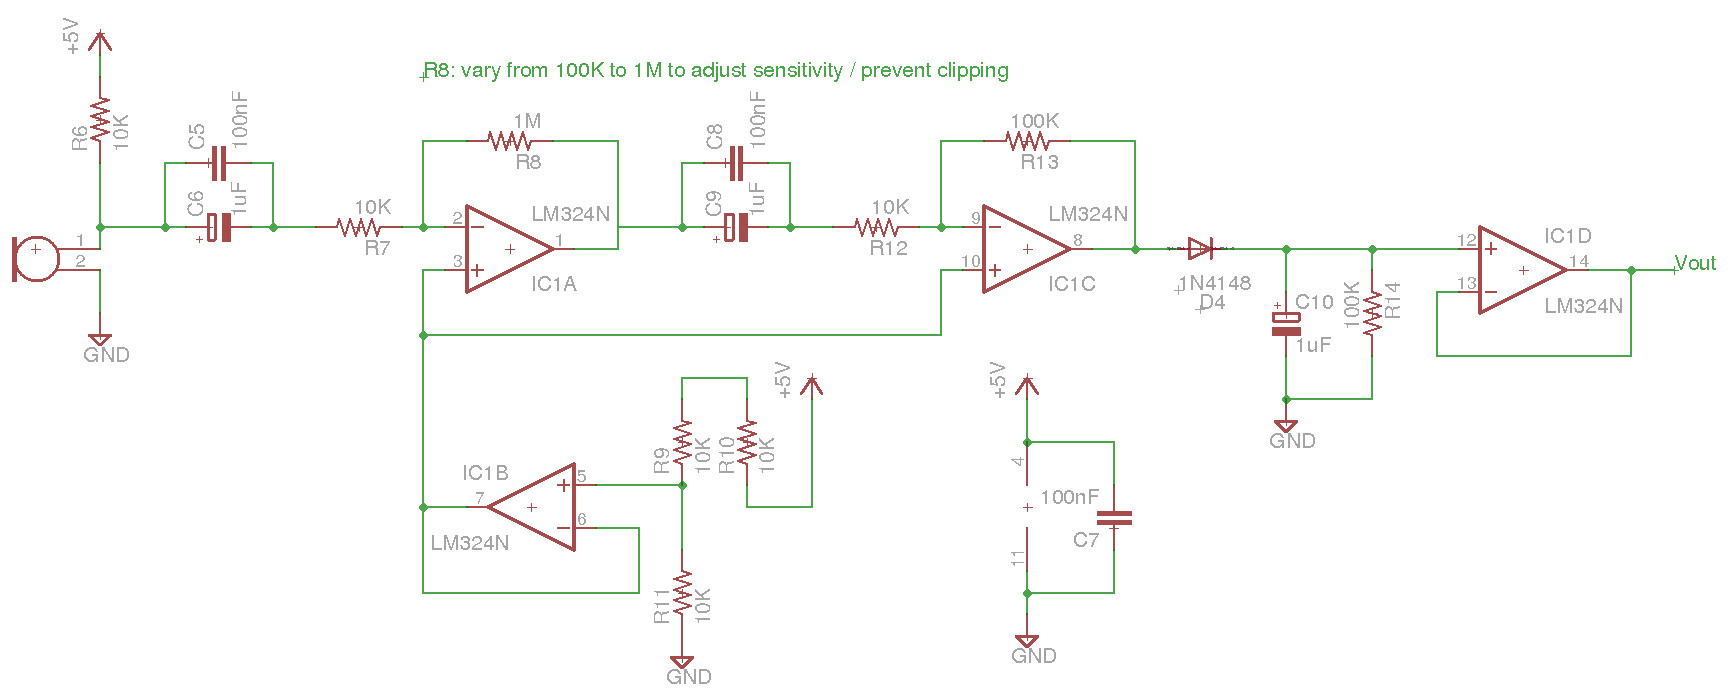 Pi Time Lighting Products Metal Related Searchesclapper Switch Clap Light The Amplified Signal Is Then Passed To A Peak Detector Output Signals From These Circuits For And Saying Hello Are Show In Figures 26 27